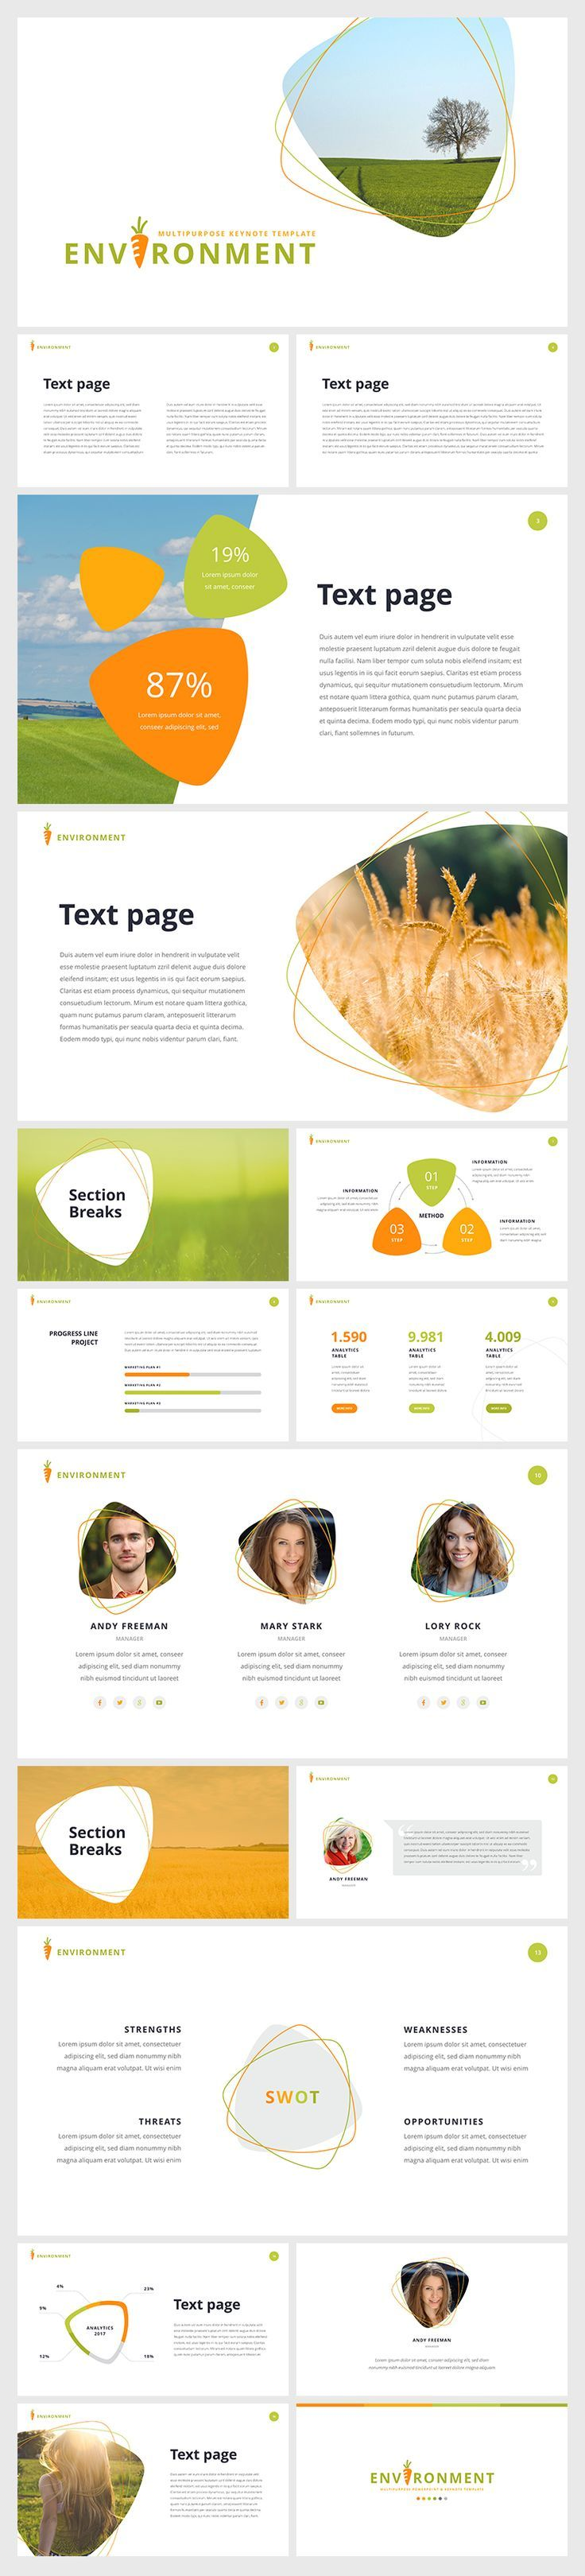 Powerpoint template environment download httpsite2maxo powerpoint template environment download httpsite2maxoenvironment toneelgroepblik Gallery